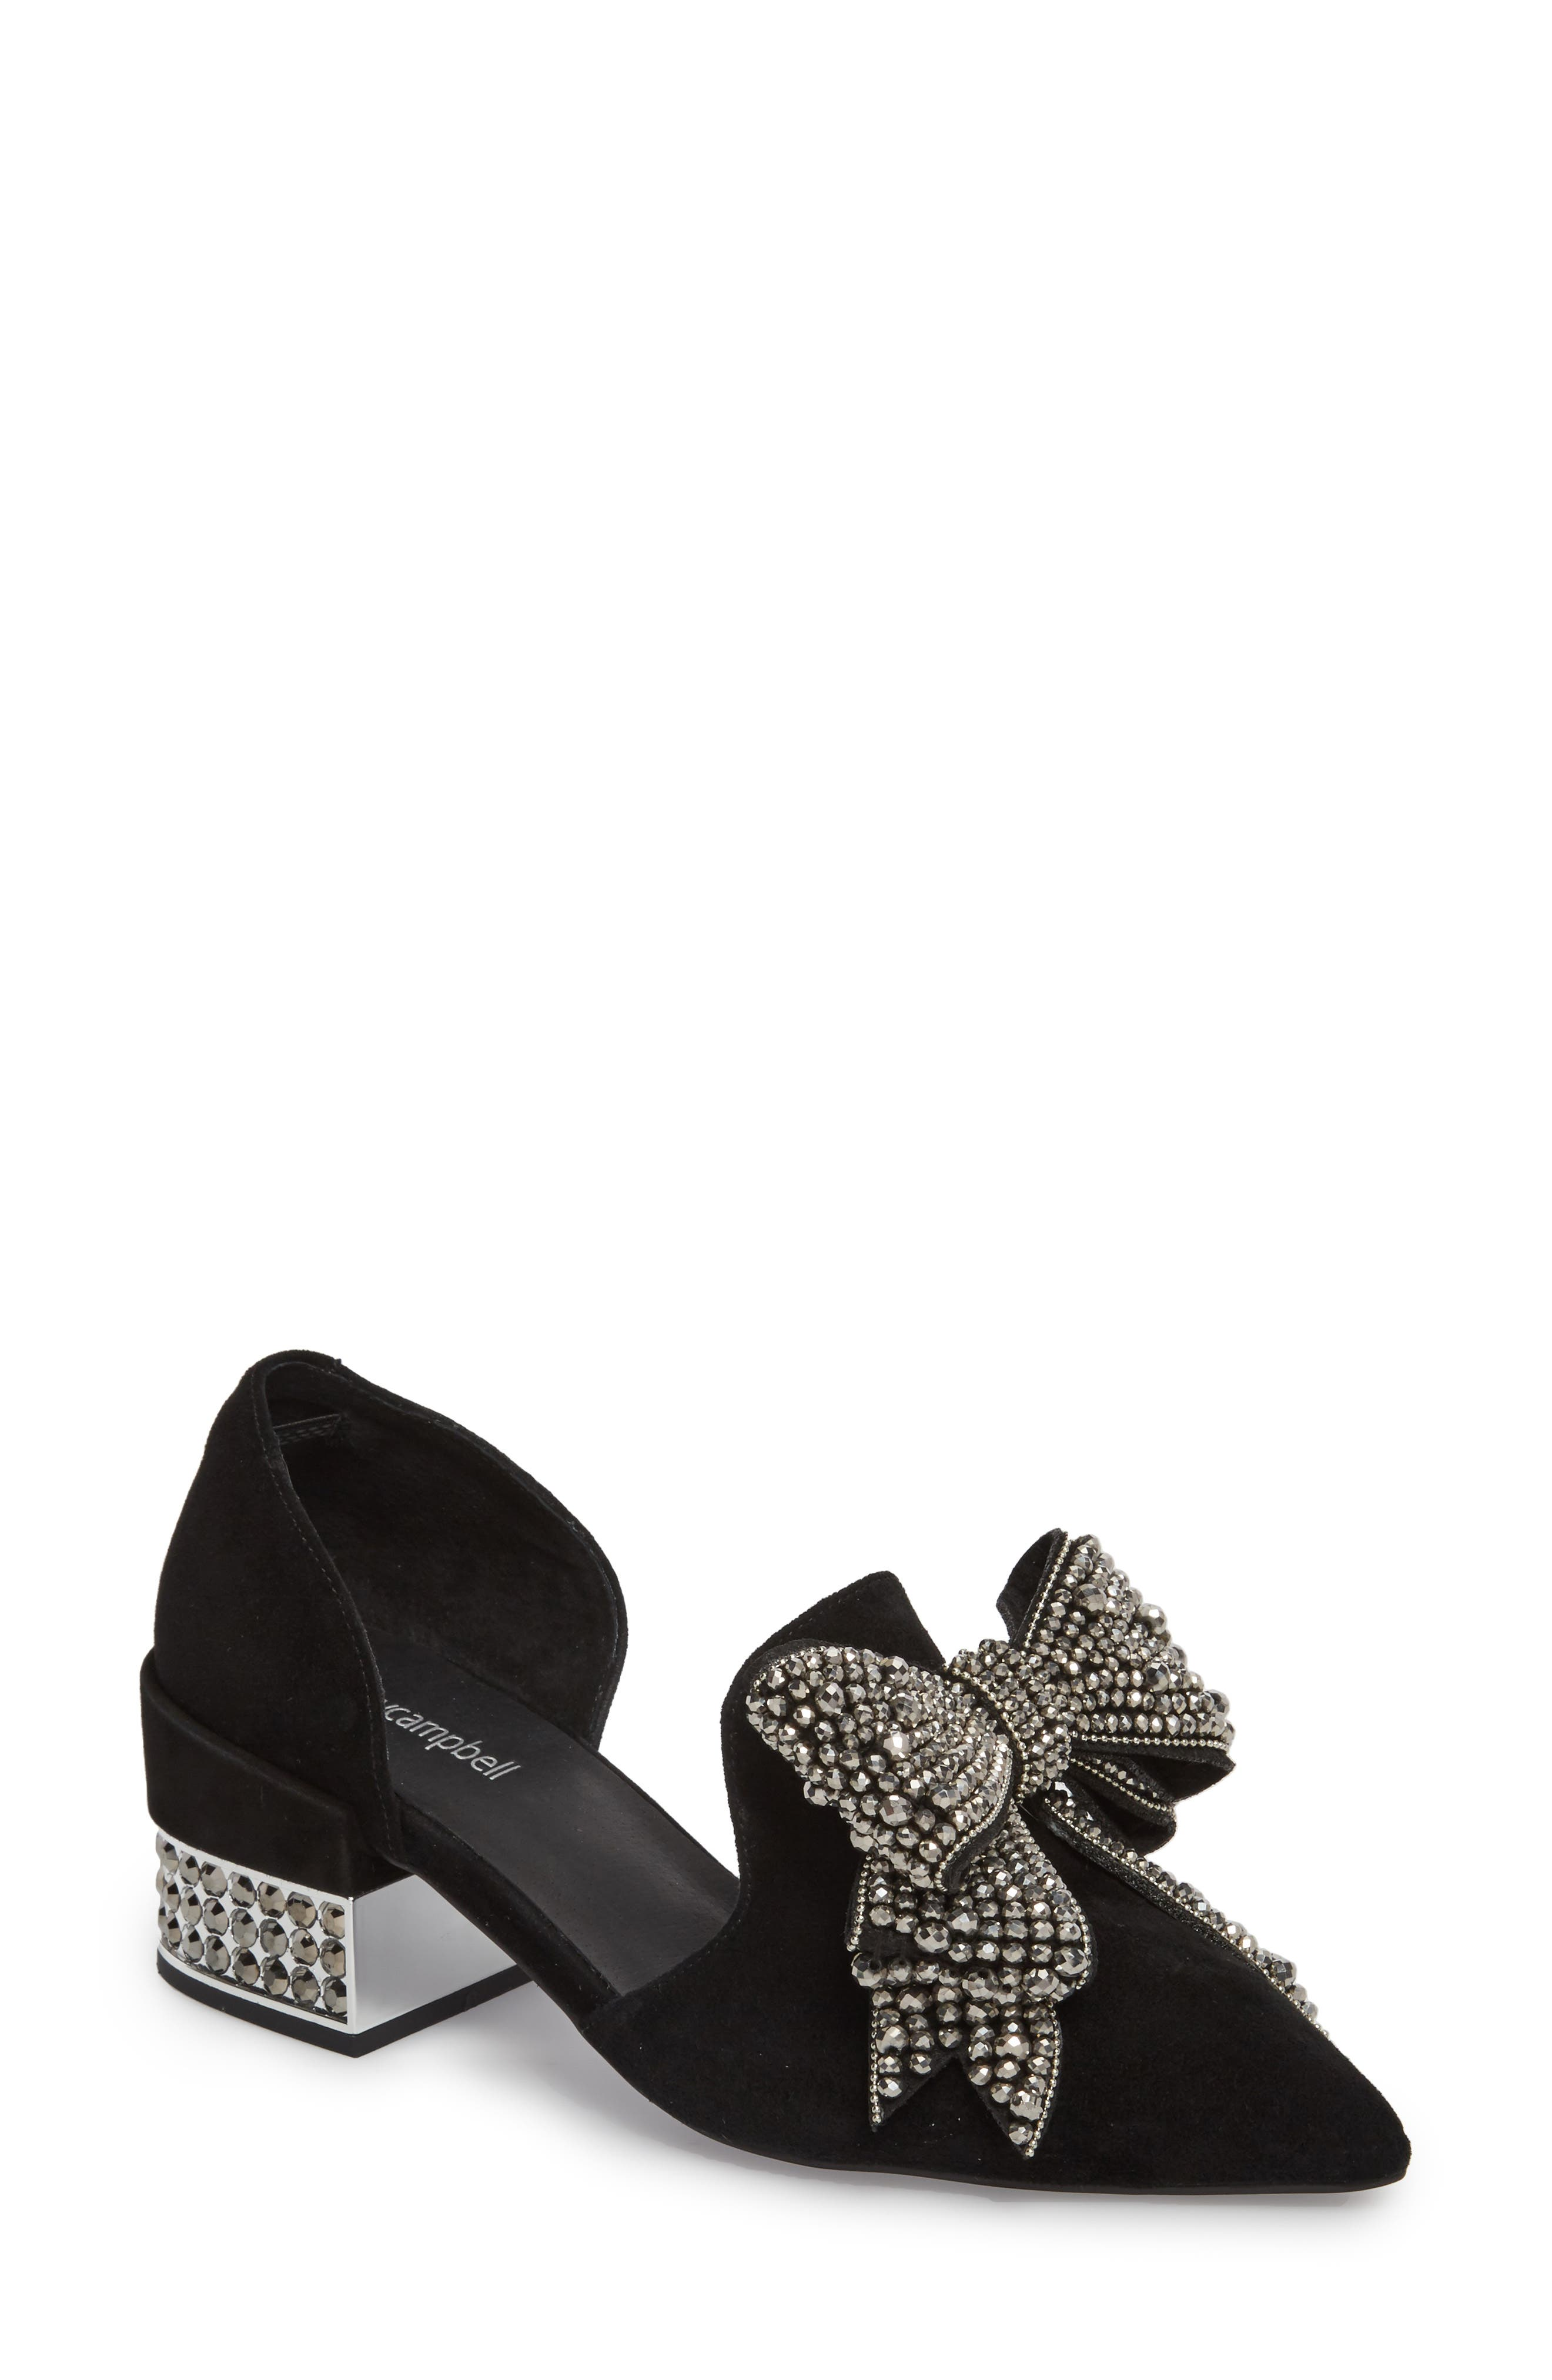 Valenti Embellished Bow Loafer,                             Main thumbnail 1, color,                             001